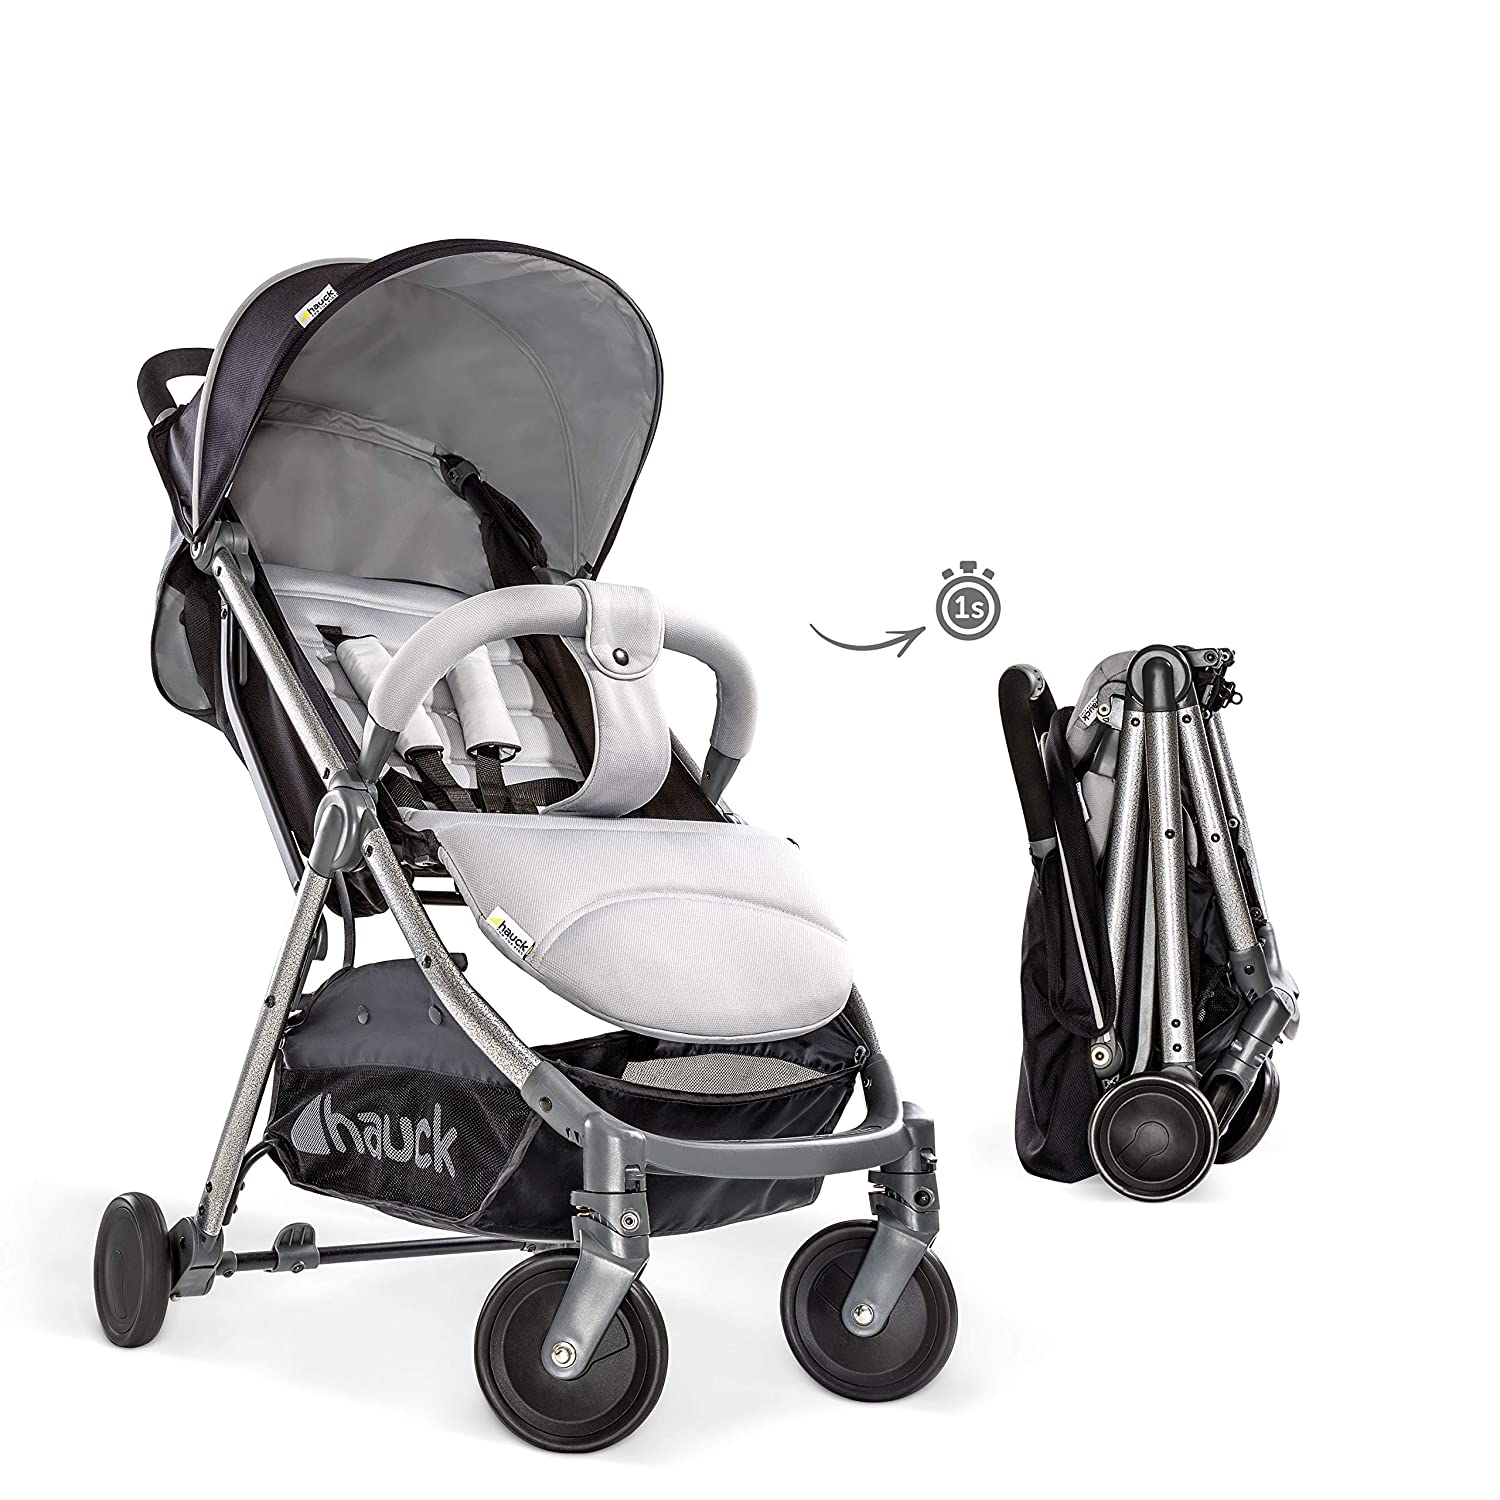 Extra Small Folding Lunar Compact Pushchair with Lying Position from Birth Up To 15 kg Lightweight One Hand Fold Hauck Swift Plus Carrying Strap